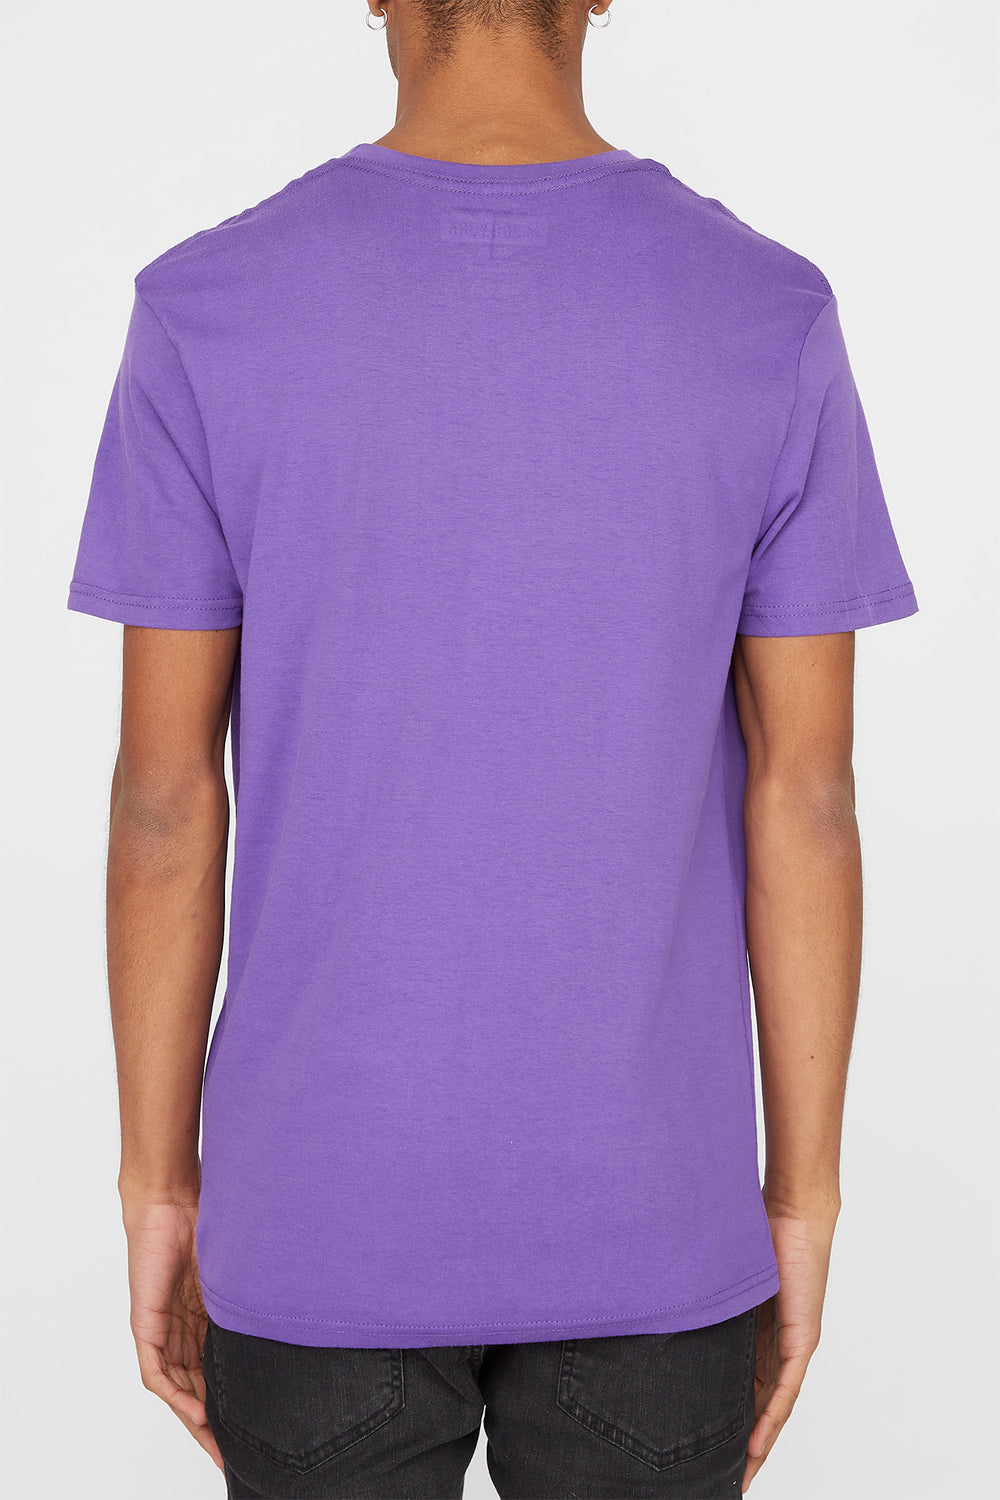 Zoo York Mens Classic Logo T-Shirt Purple